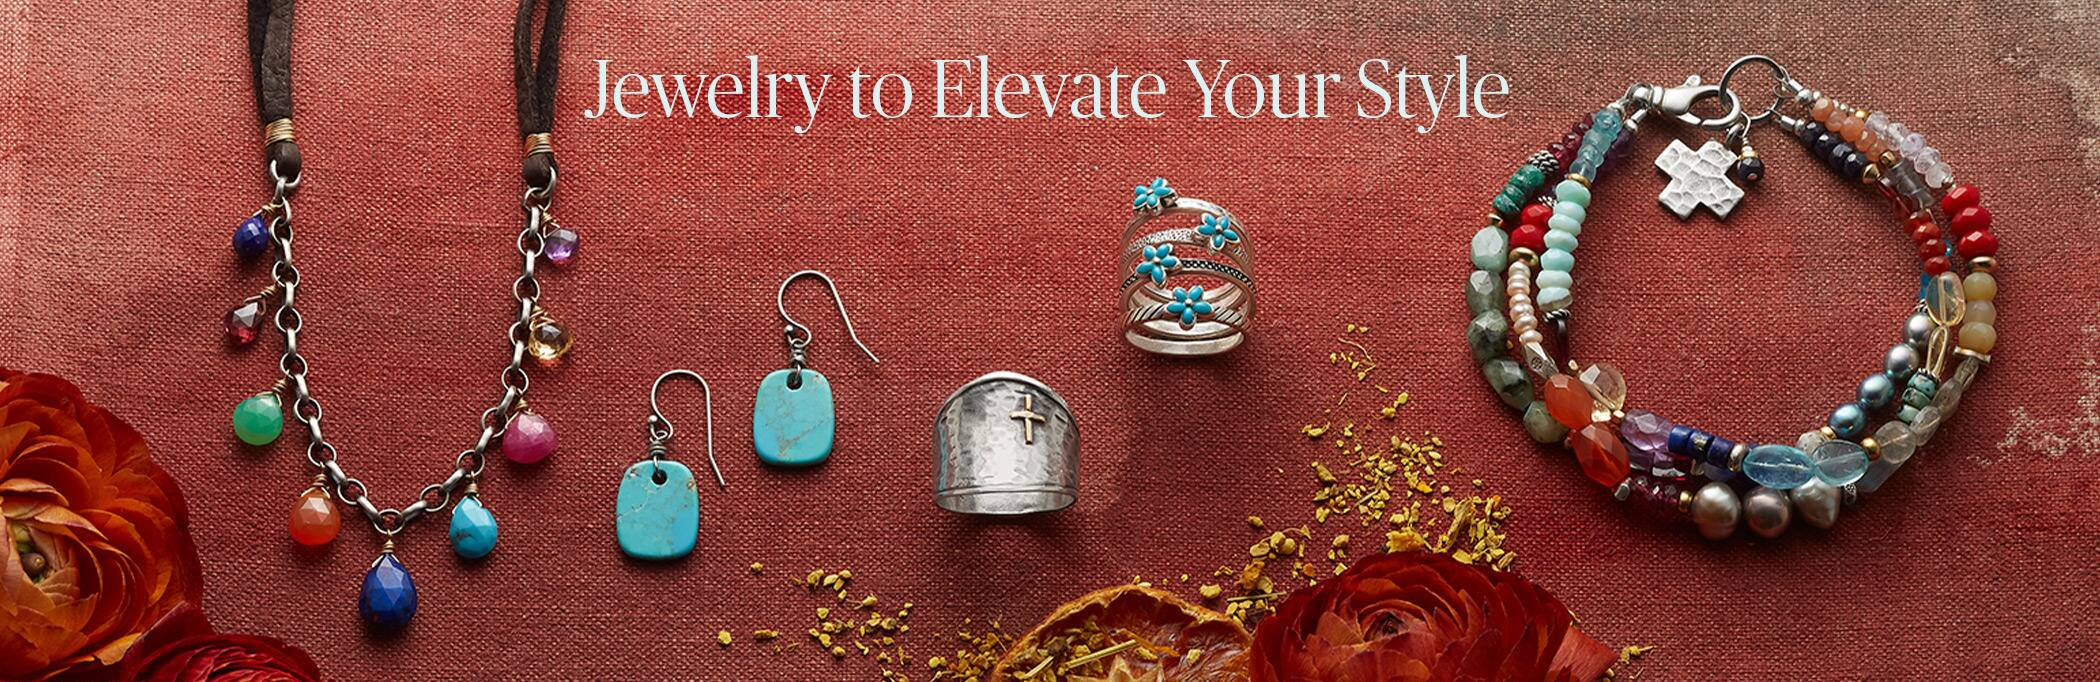 Jewelry to Elevate Your Style